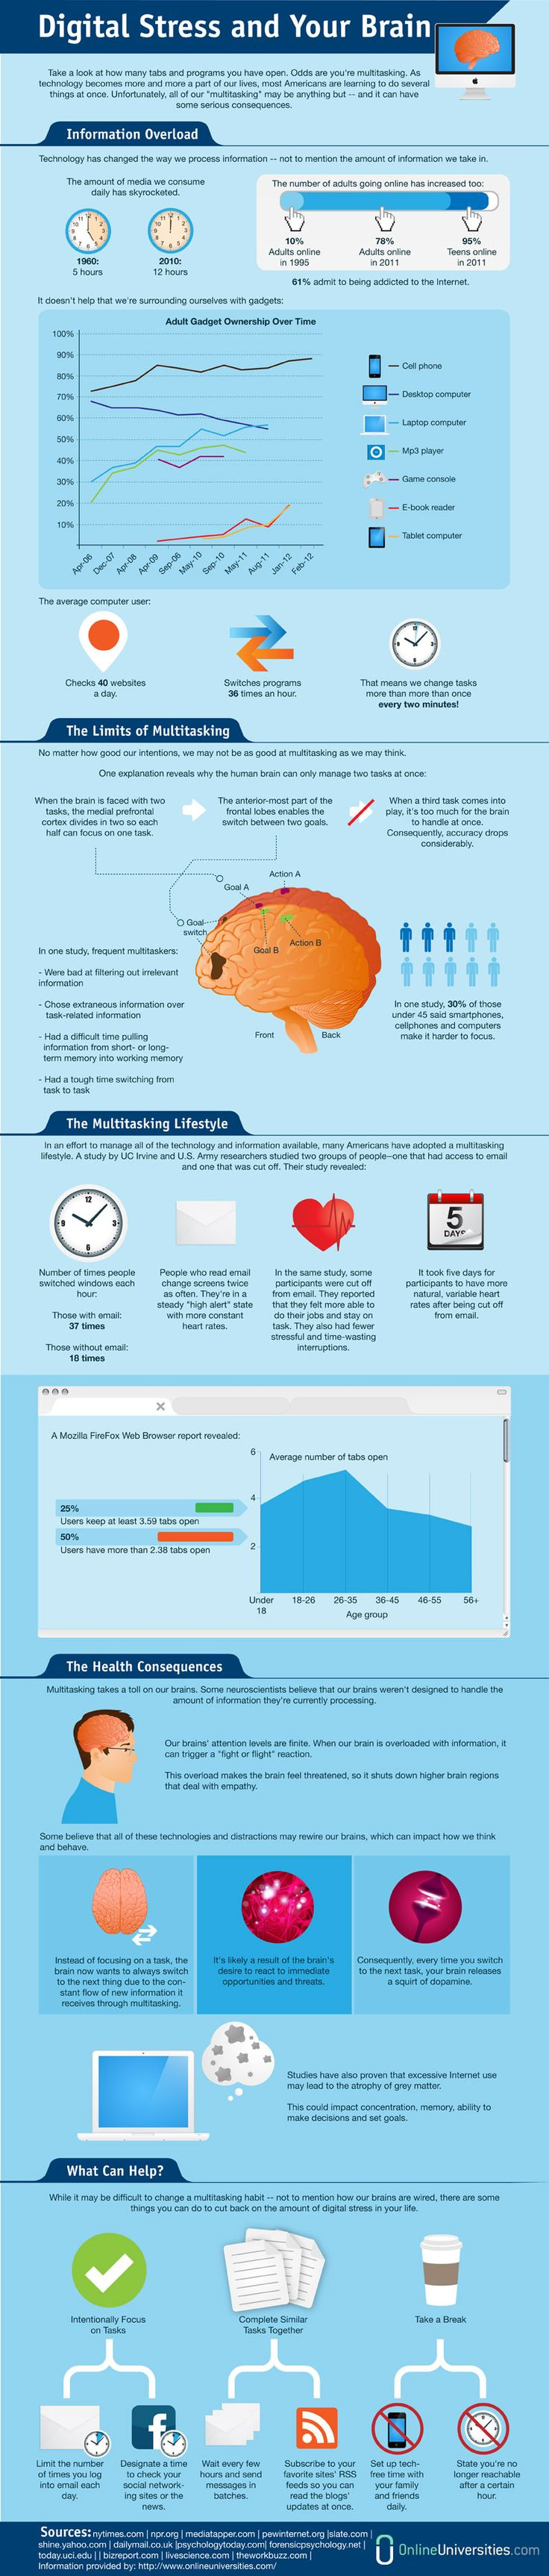 What Digital Stress Does To Your Brain #Infographic #stress #healthcare - www.healthcoverageally.com